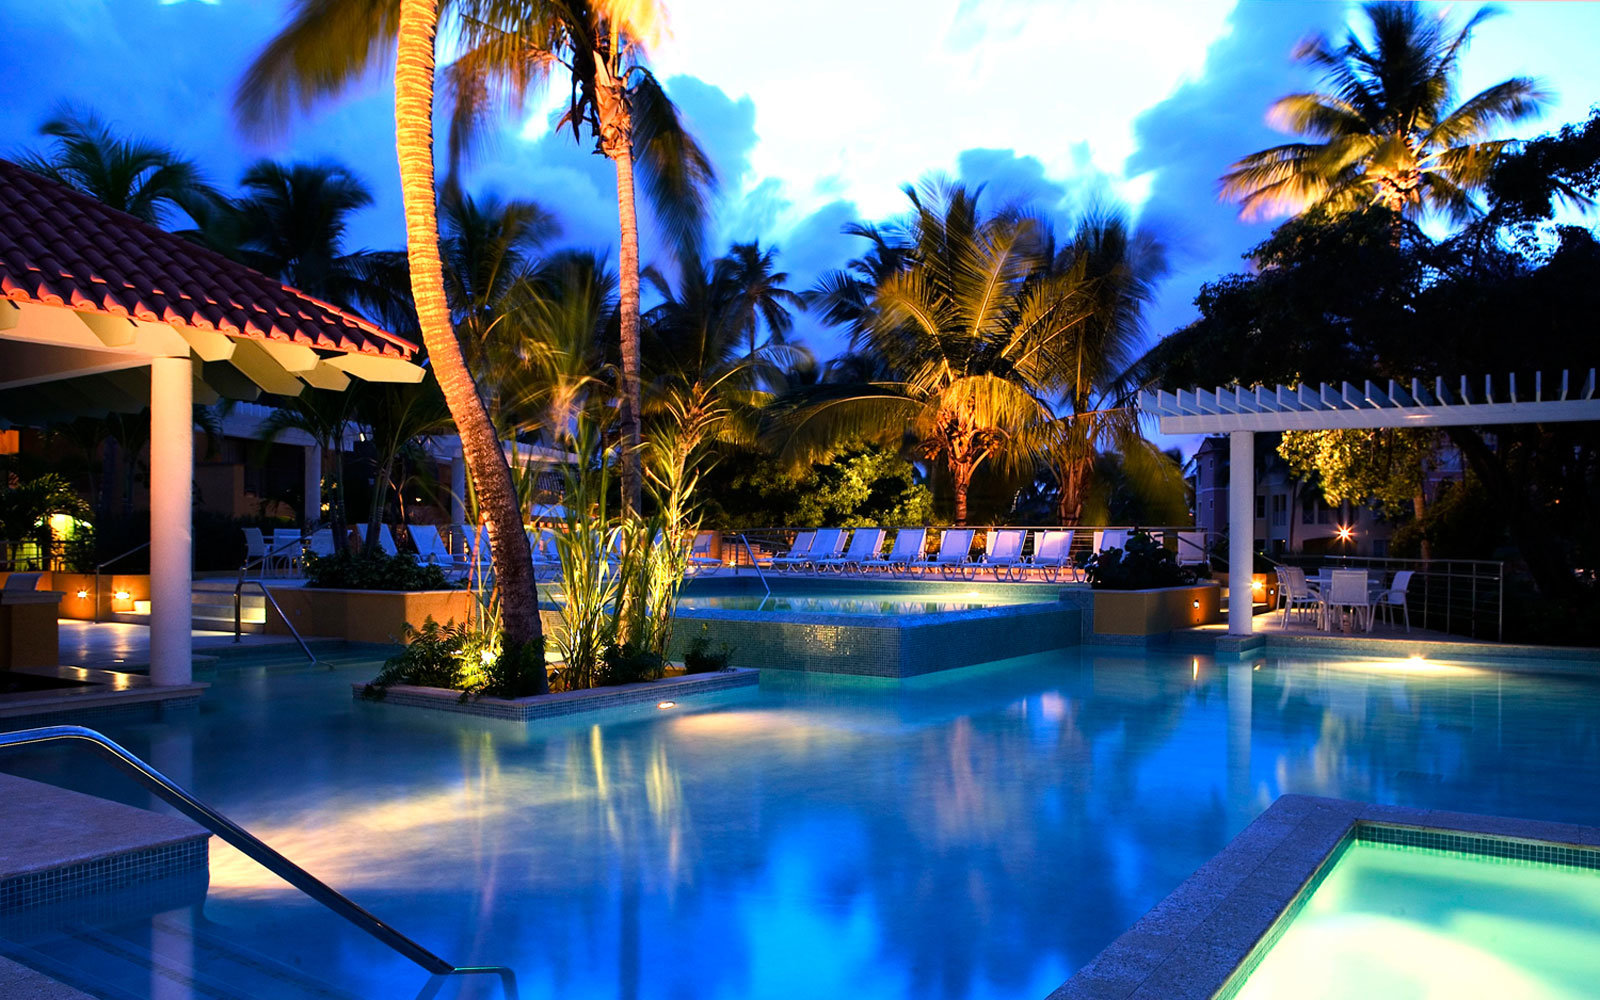 The Best All-Inclusive Spots in Puerto Rico   Travel + Leisure